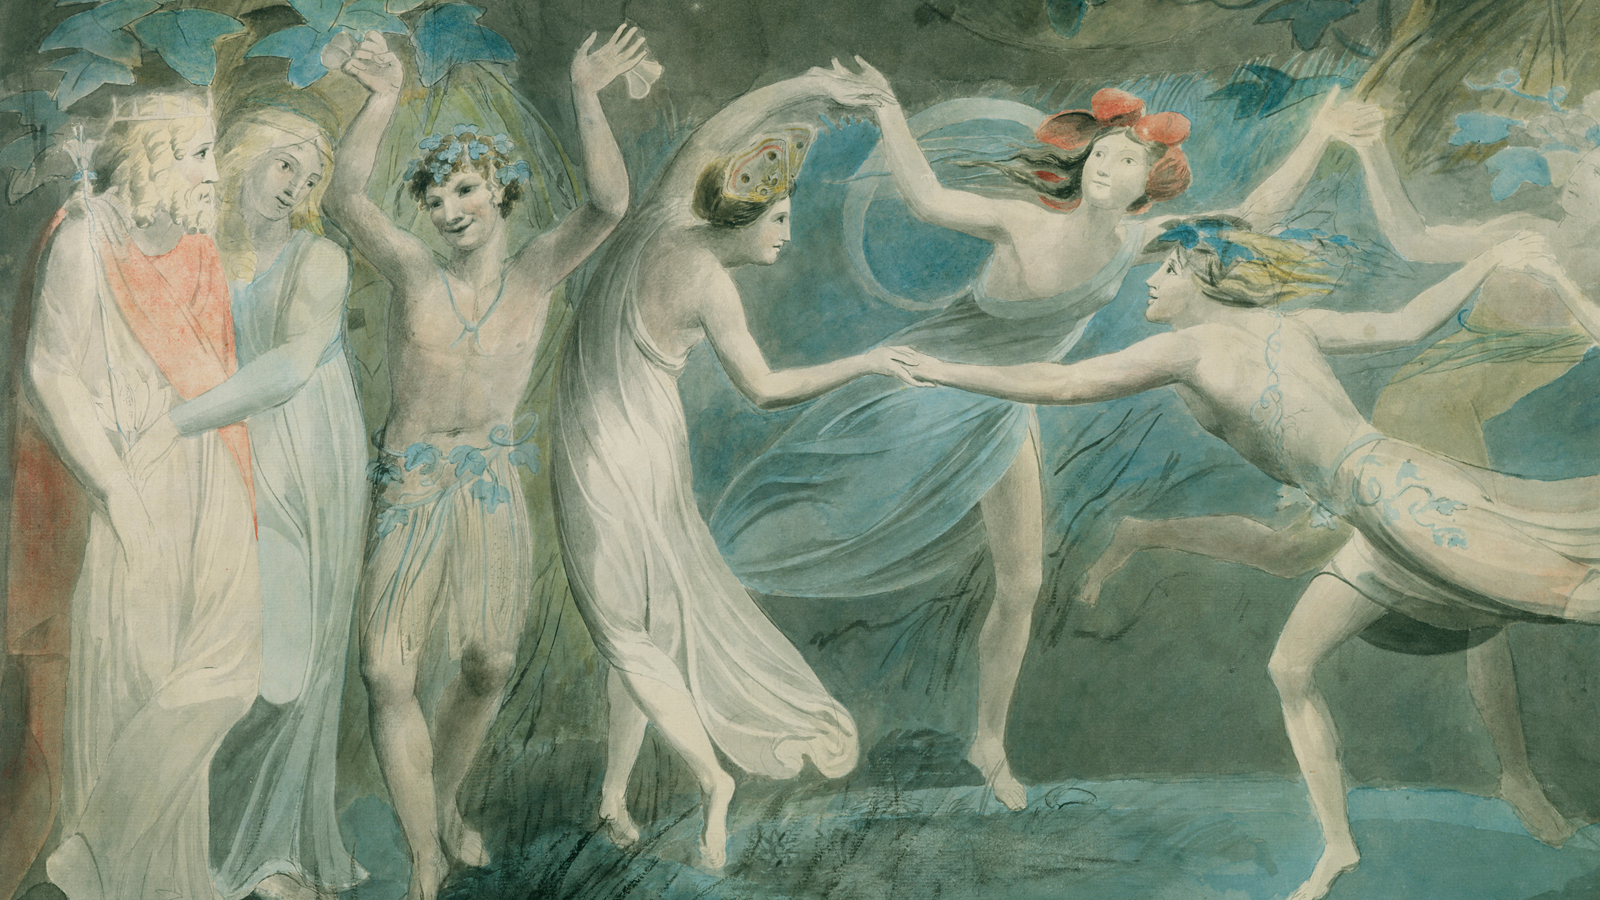 Shakespeare's festive comedy: A Midsummer Night's Dream and Twelfth Night